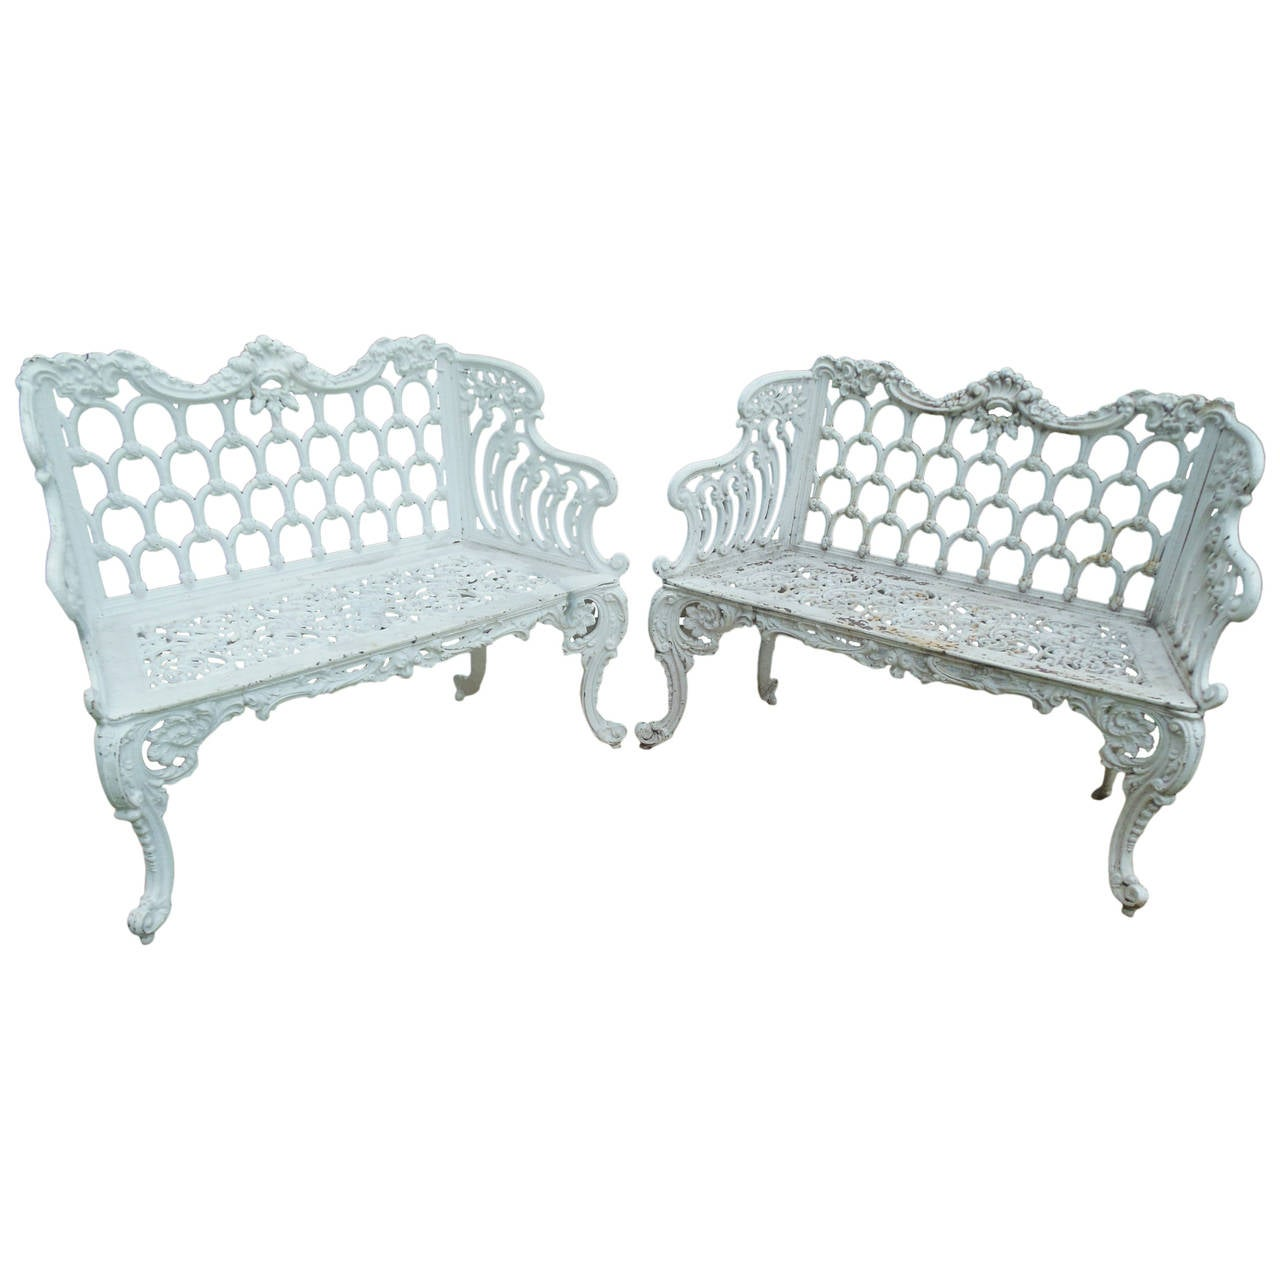 benches cast iron pair of white house garden benches at